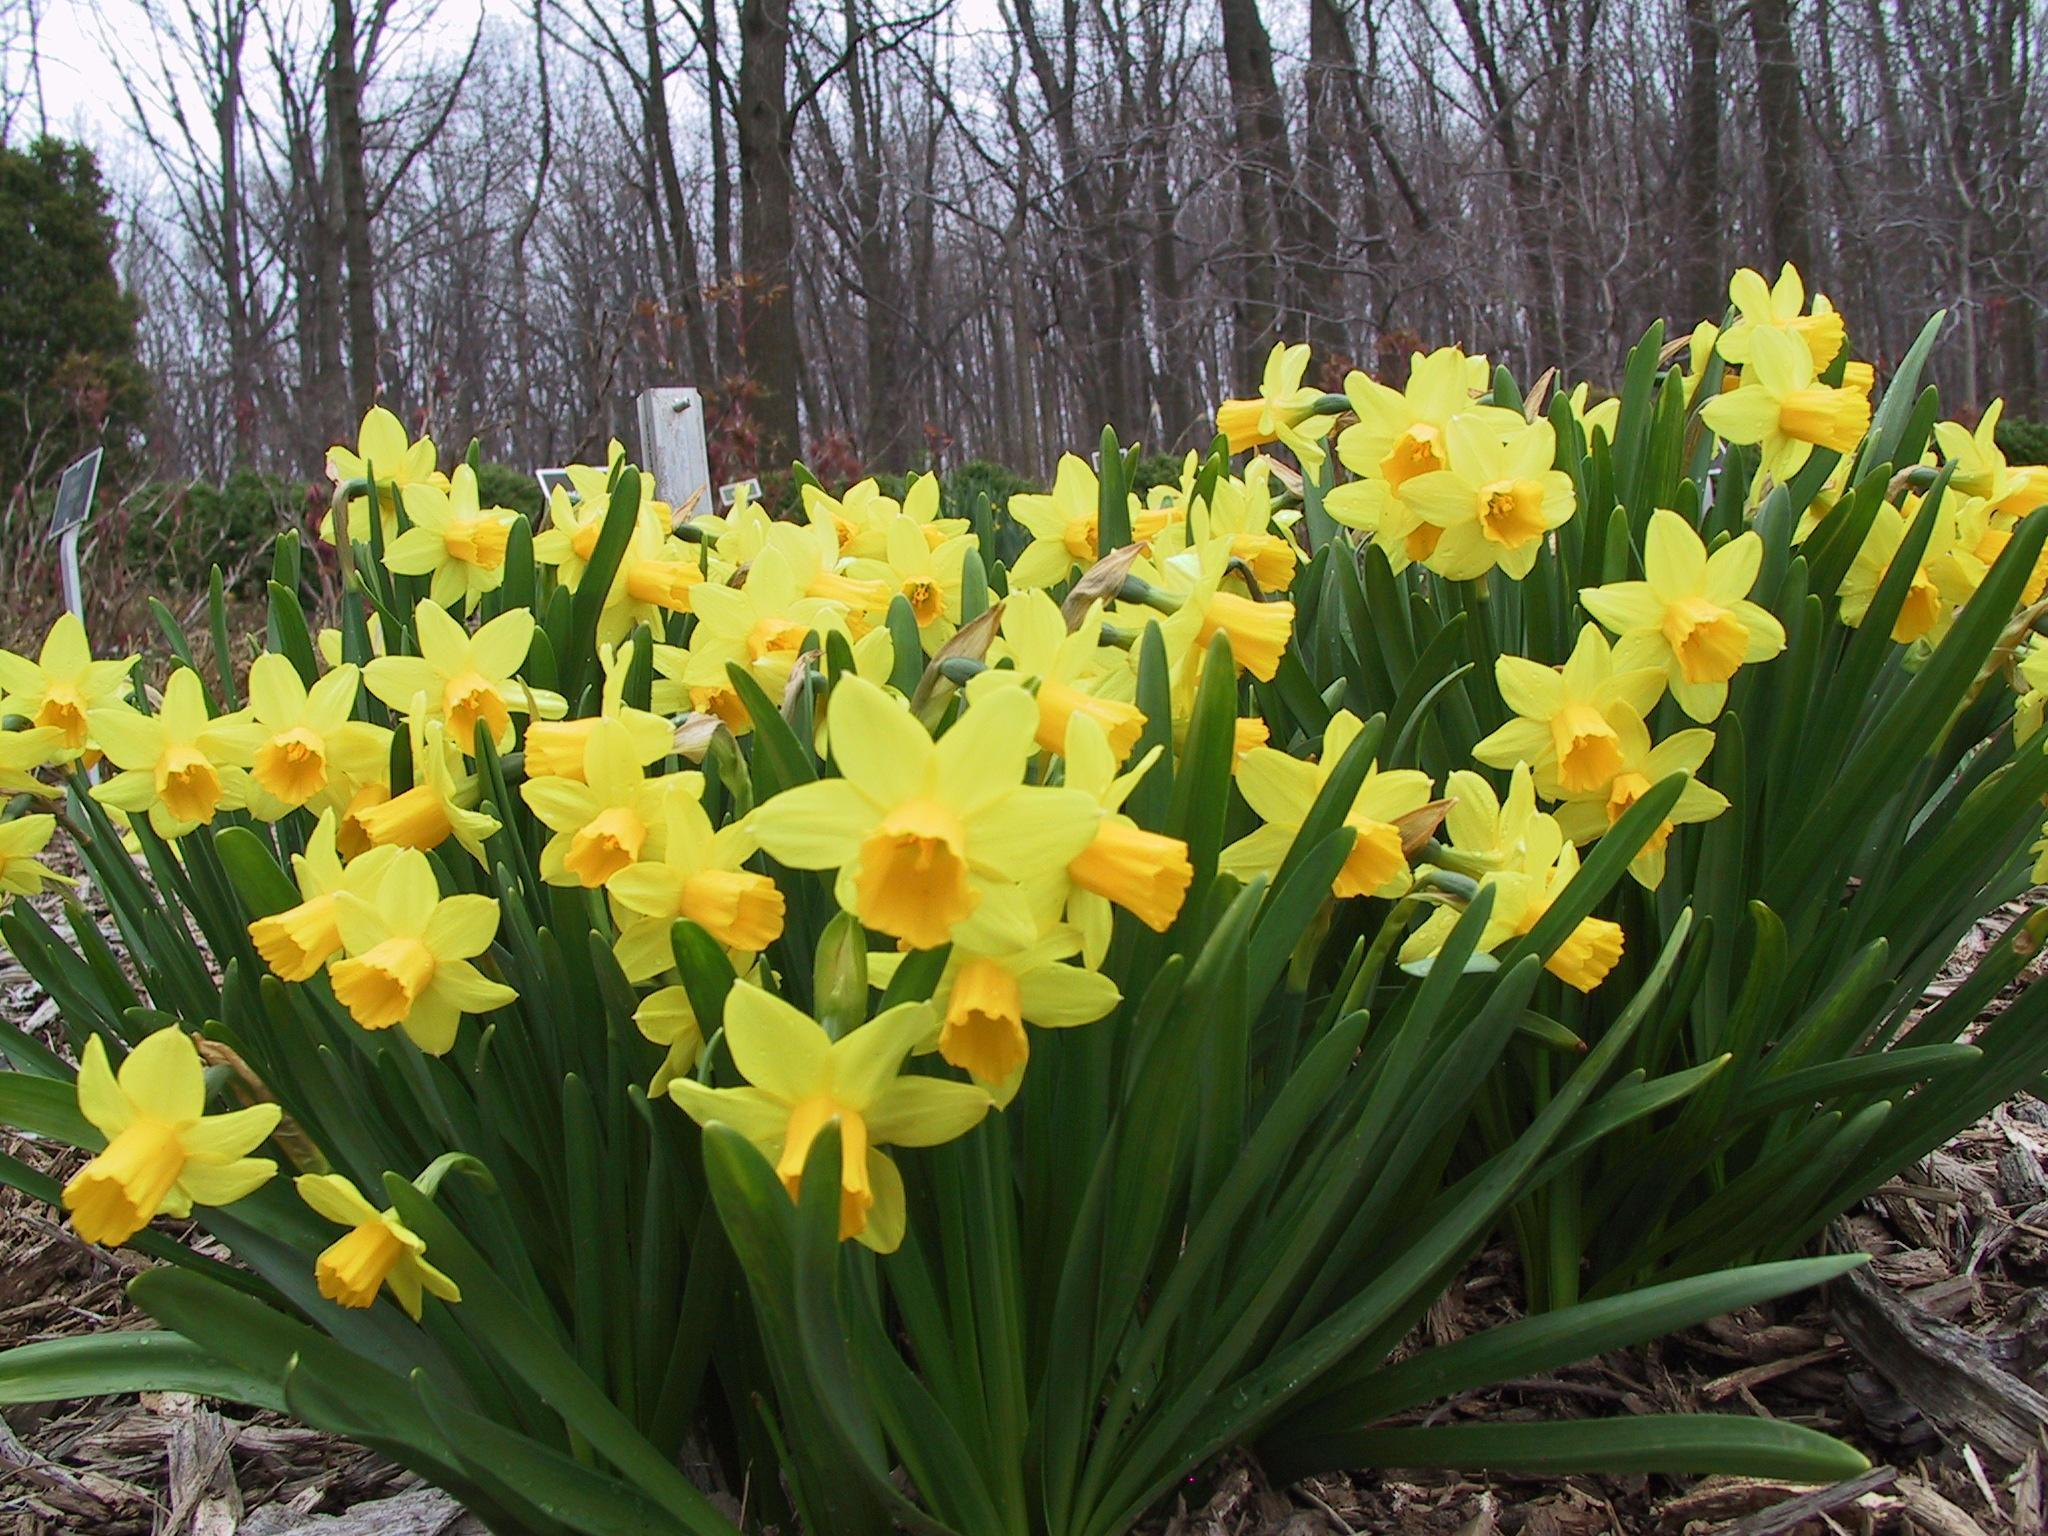 Associated with Venus and water, daffodils promote love, fertility, and luck.